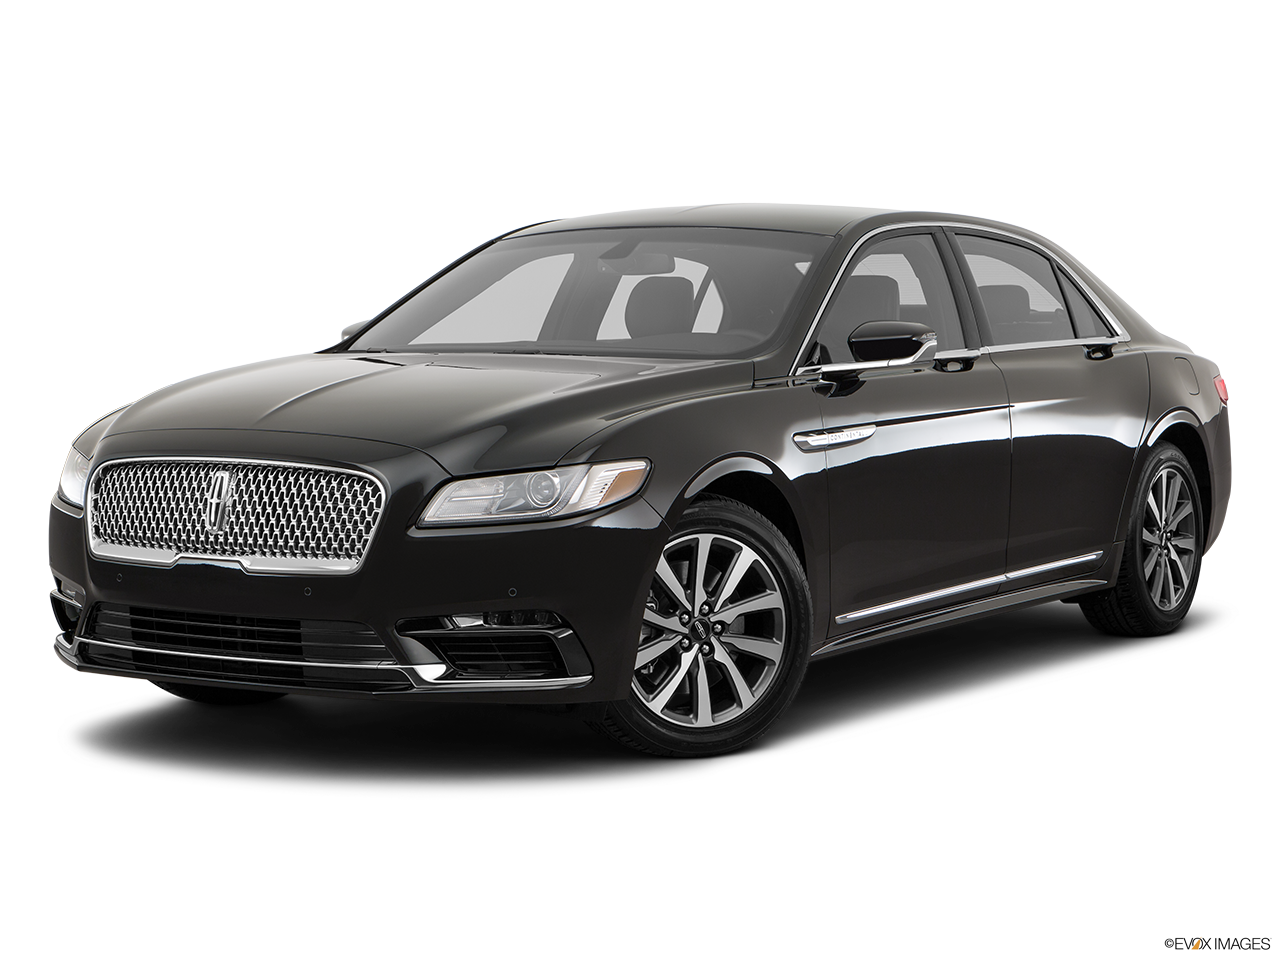 Test Drive A 2017 Lincoln Continental at Sunnyvale Lincoln in Sunnyvale